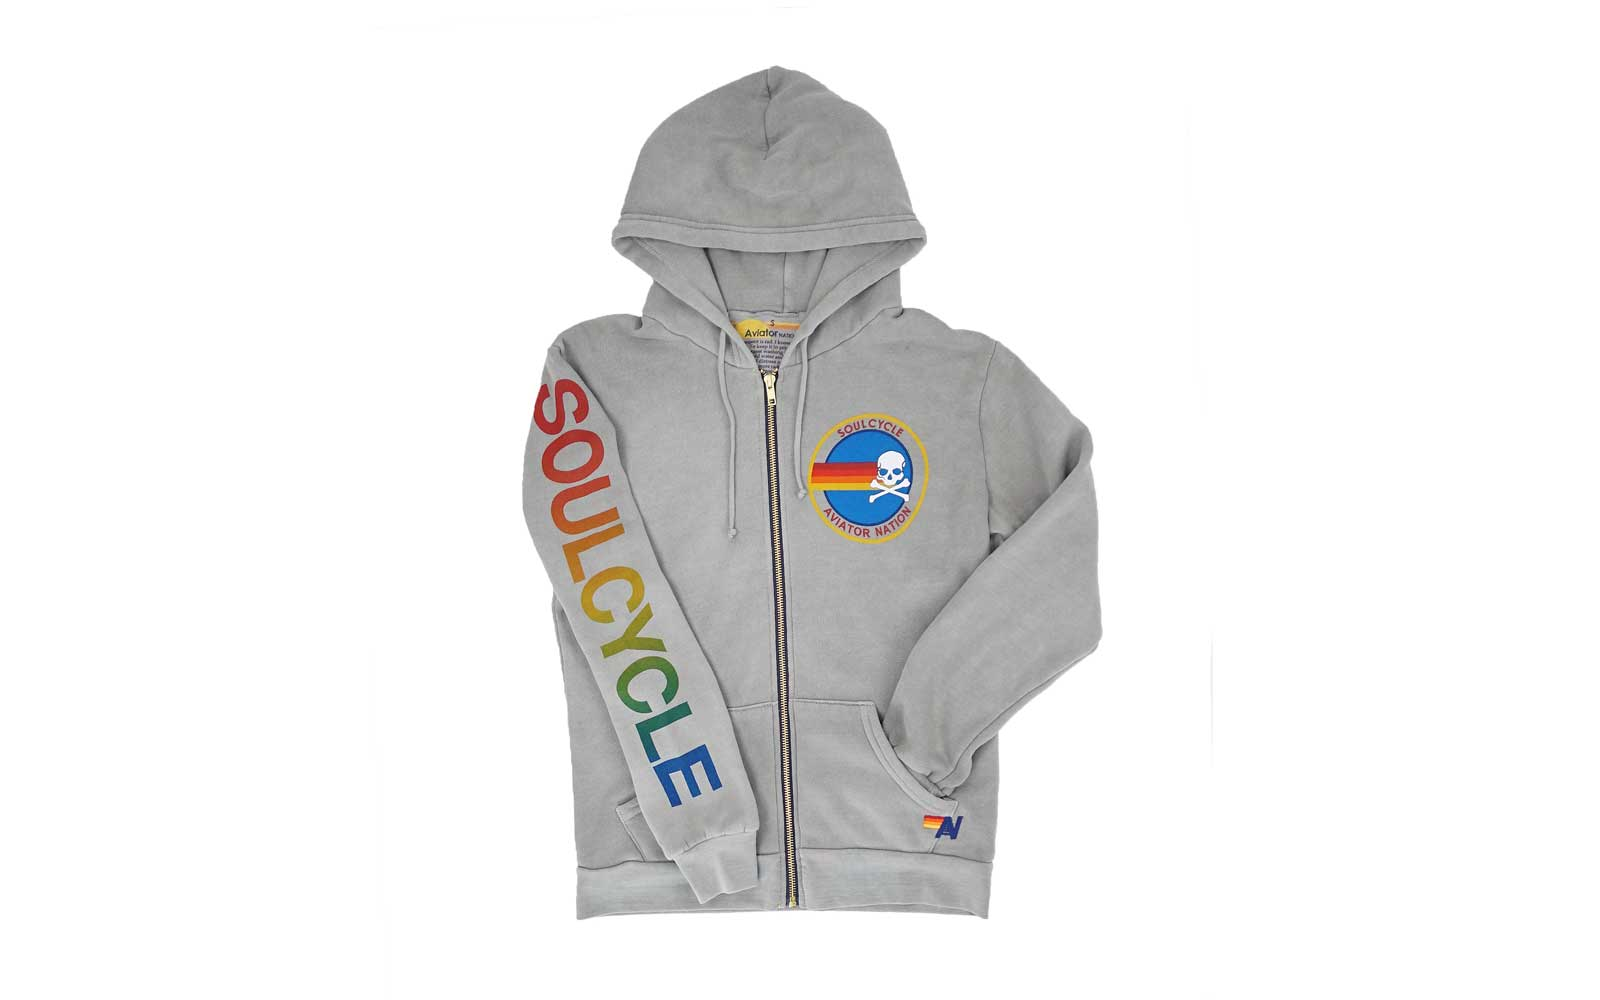 Soulcycle x Aviator Nation clothing collaboration